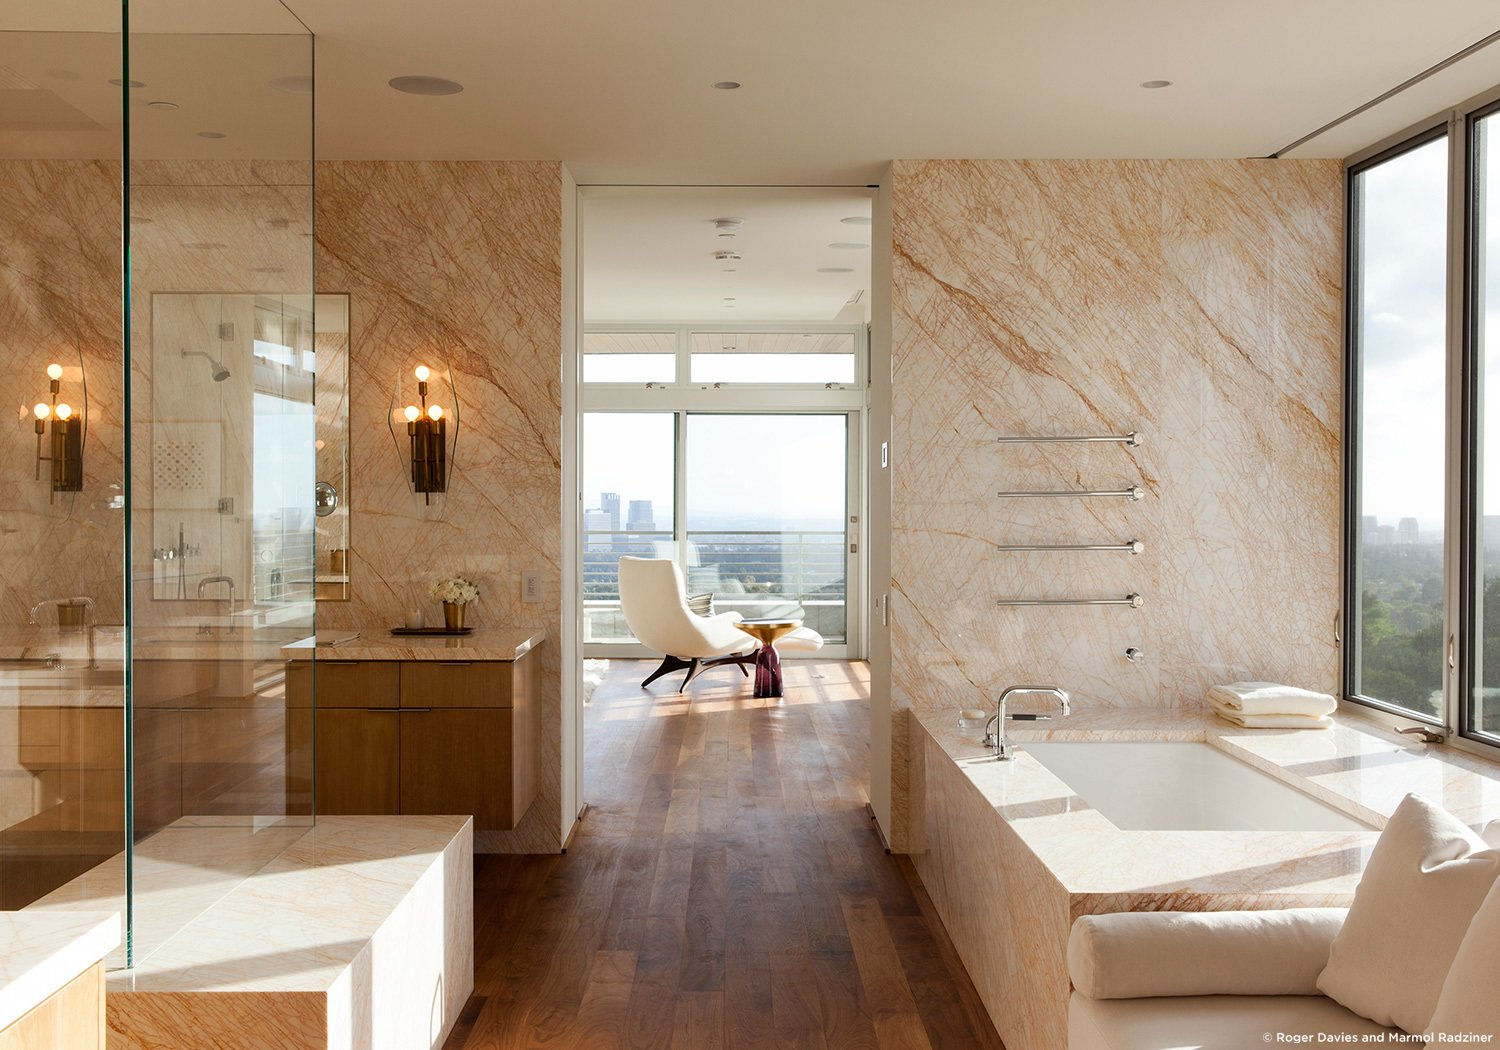 #SummitridgeResidence #modern #midcentury #levels #interior #inside #bathroom #sink #bathtub #windows #view #marble #wood #lighting #BeverlyHills #MarmolRadziner  Summitridge Residence